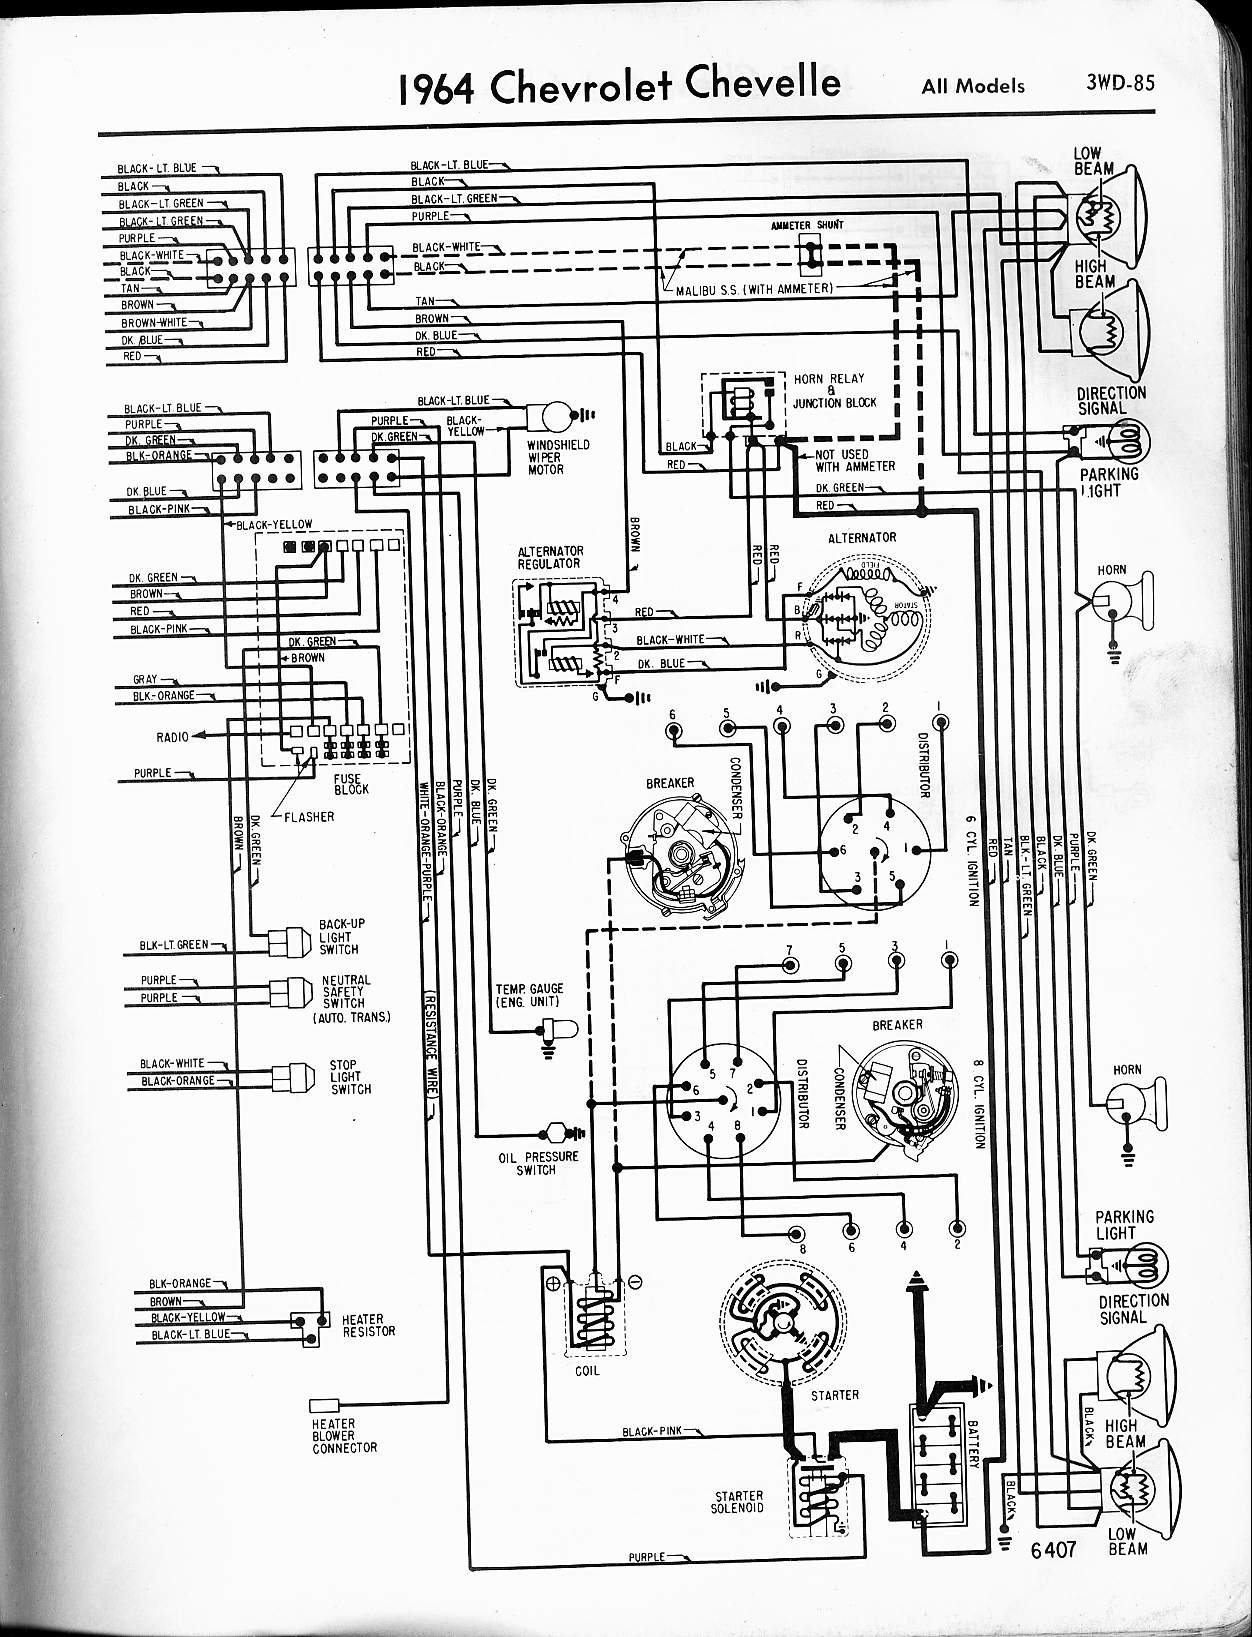 chevy diagrams rh wiring wizard com 1969 Chevelle Tach Wiring Diagram 1969 chevelle wiper motor wiring diagram